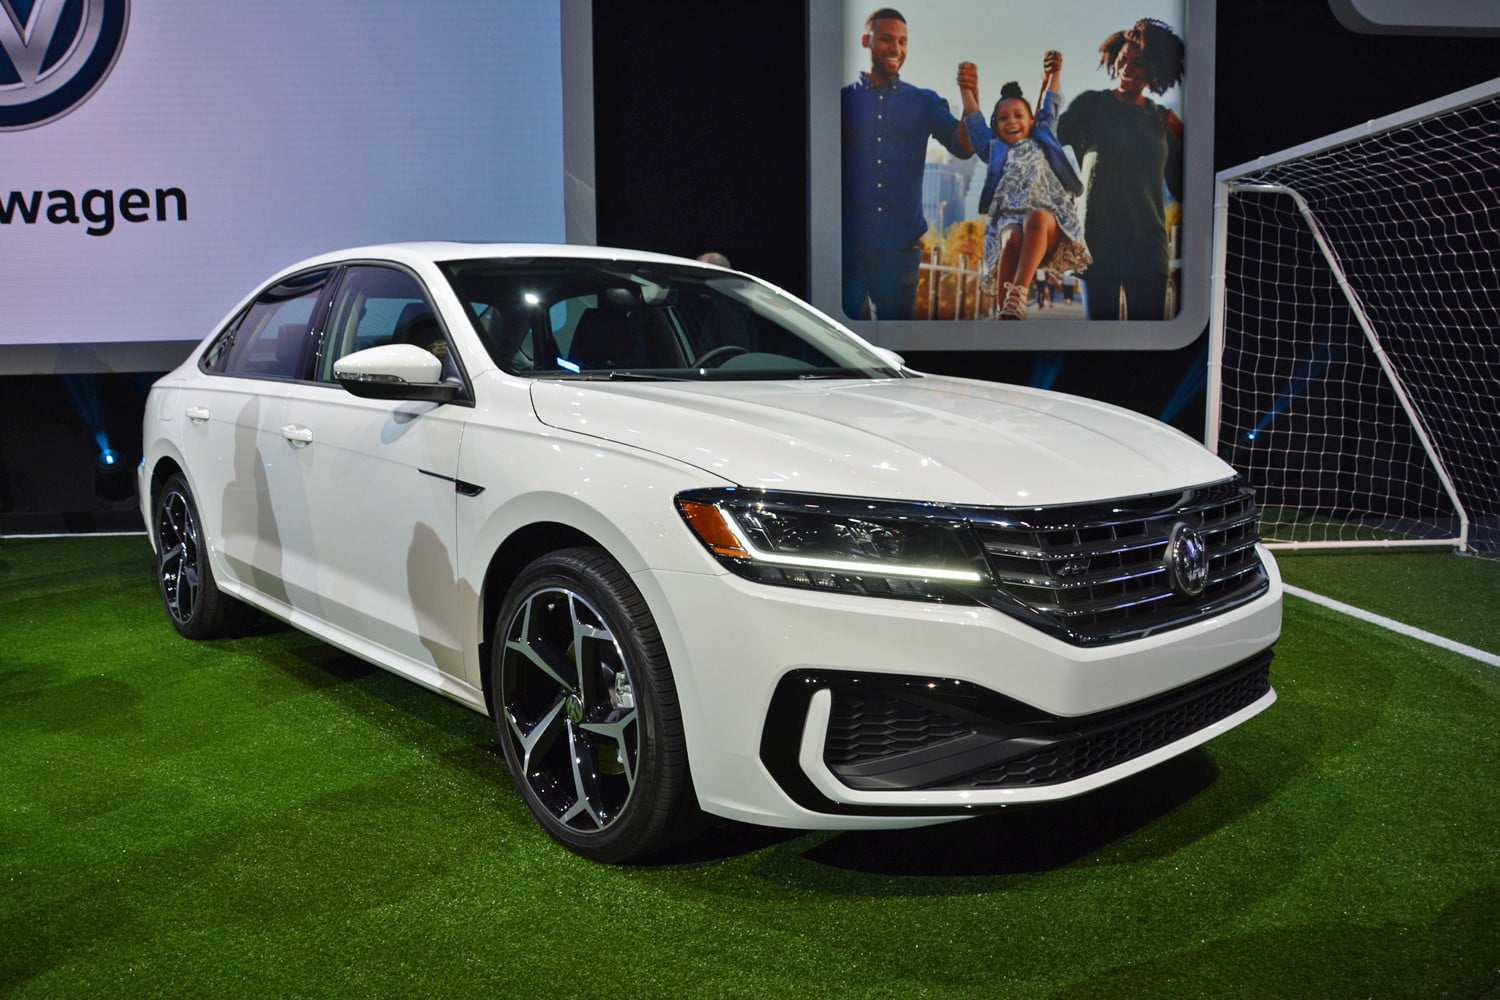 66 All New 2020 Vw Sharan New Concept for 2020 Vw Sharan